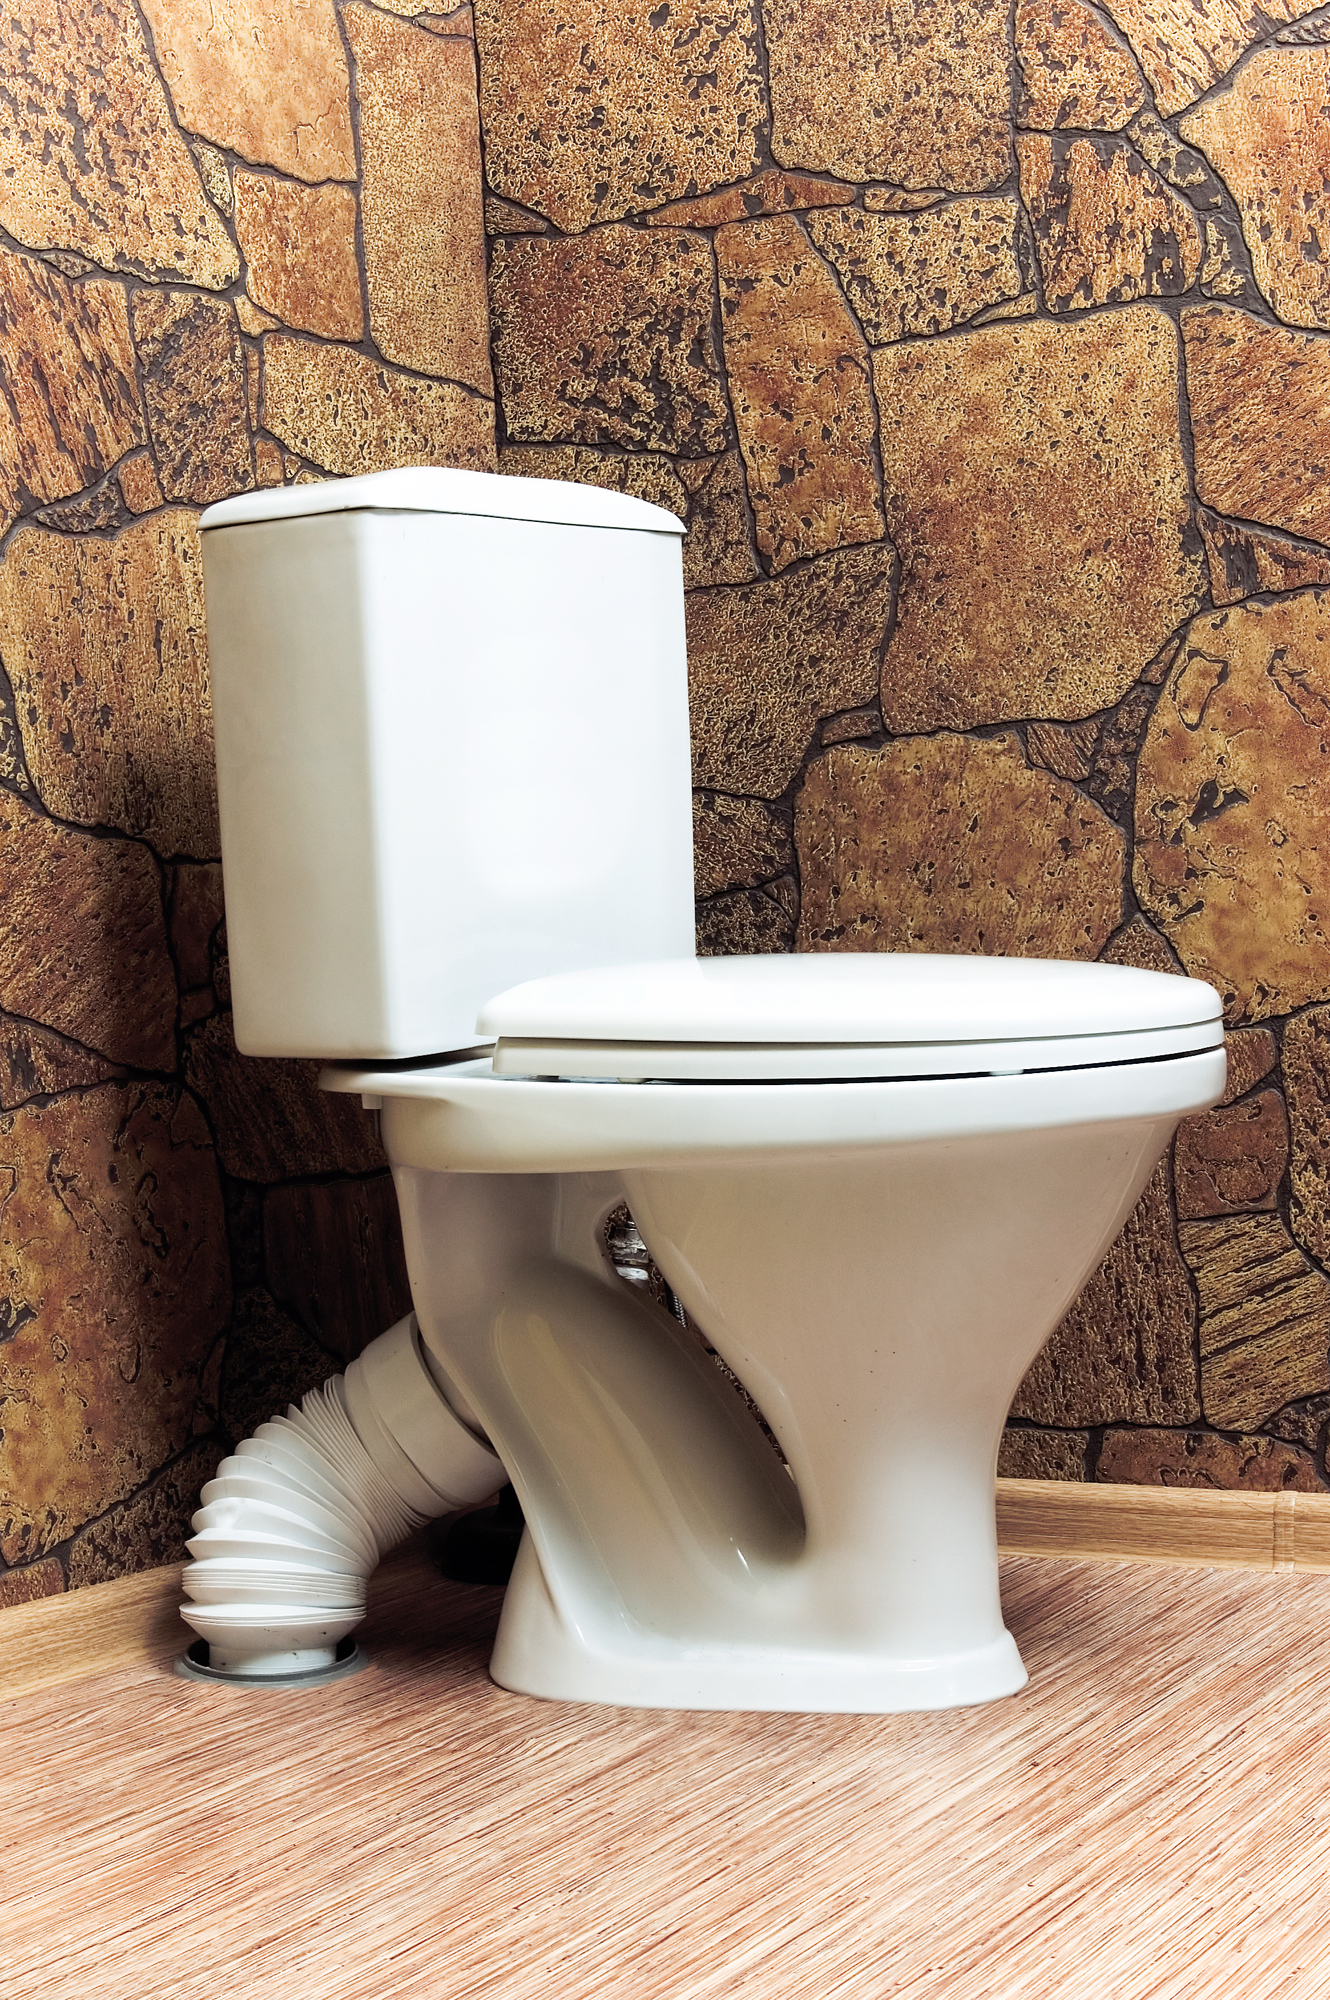 Ask a Plumber: Should You Replace Your Toilet With a Low-Flow Model ...